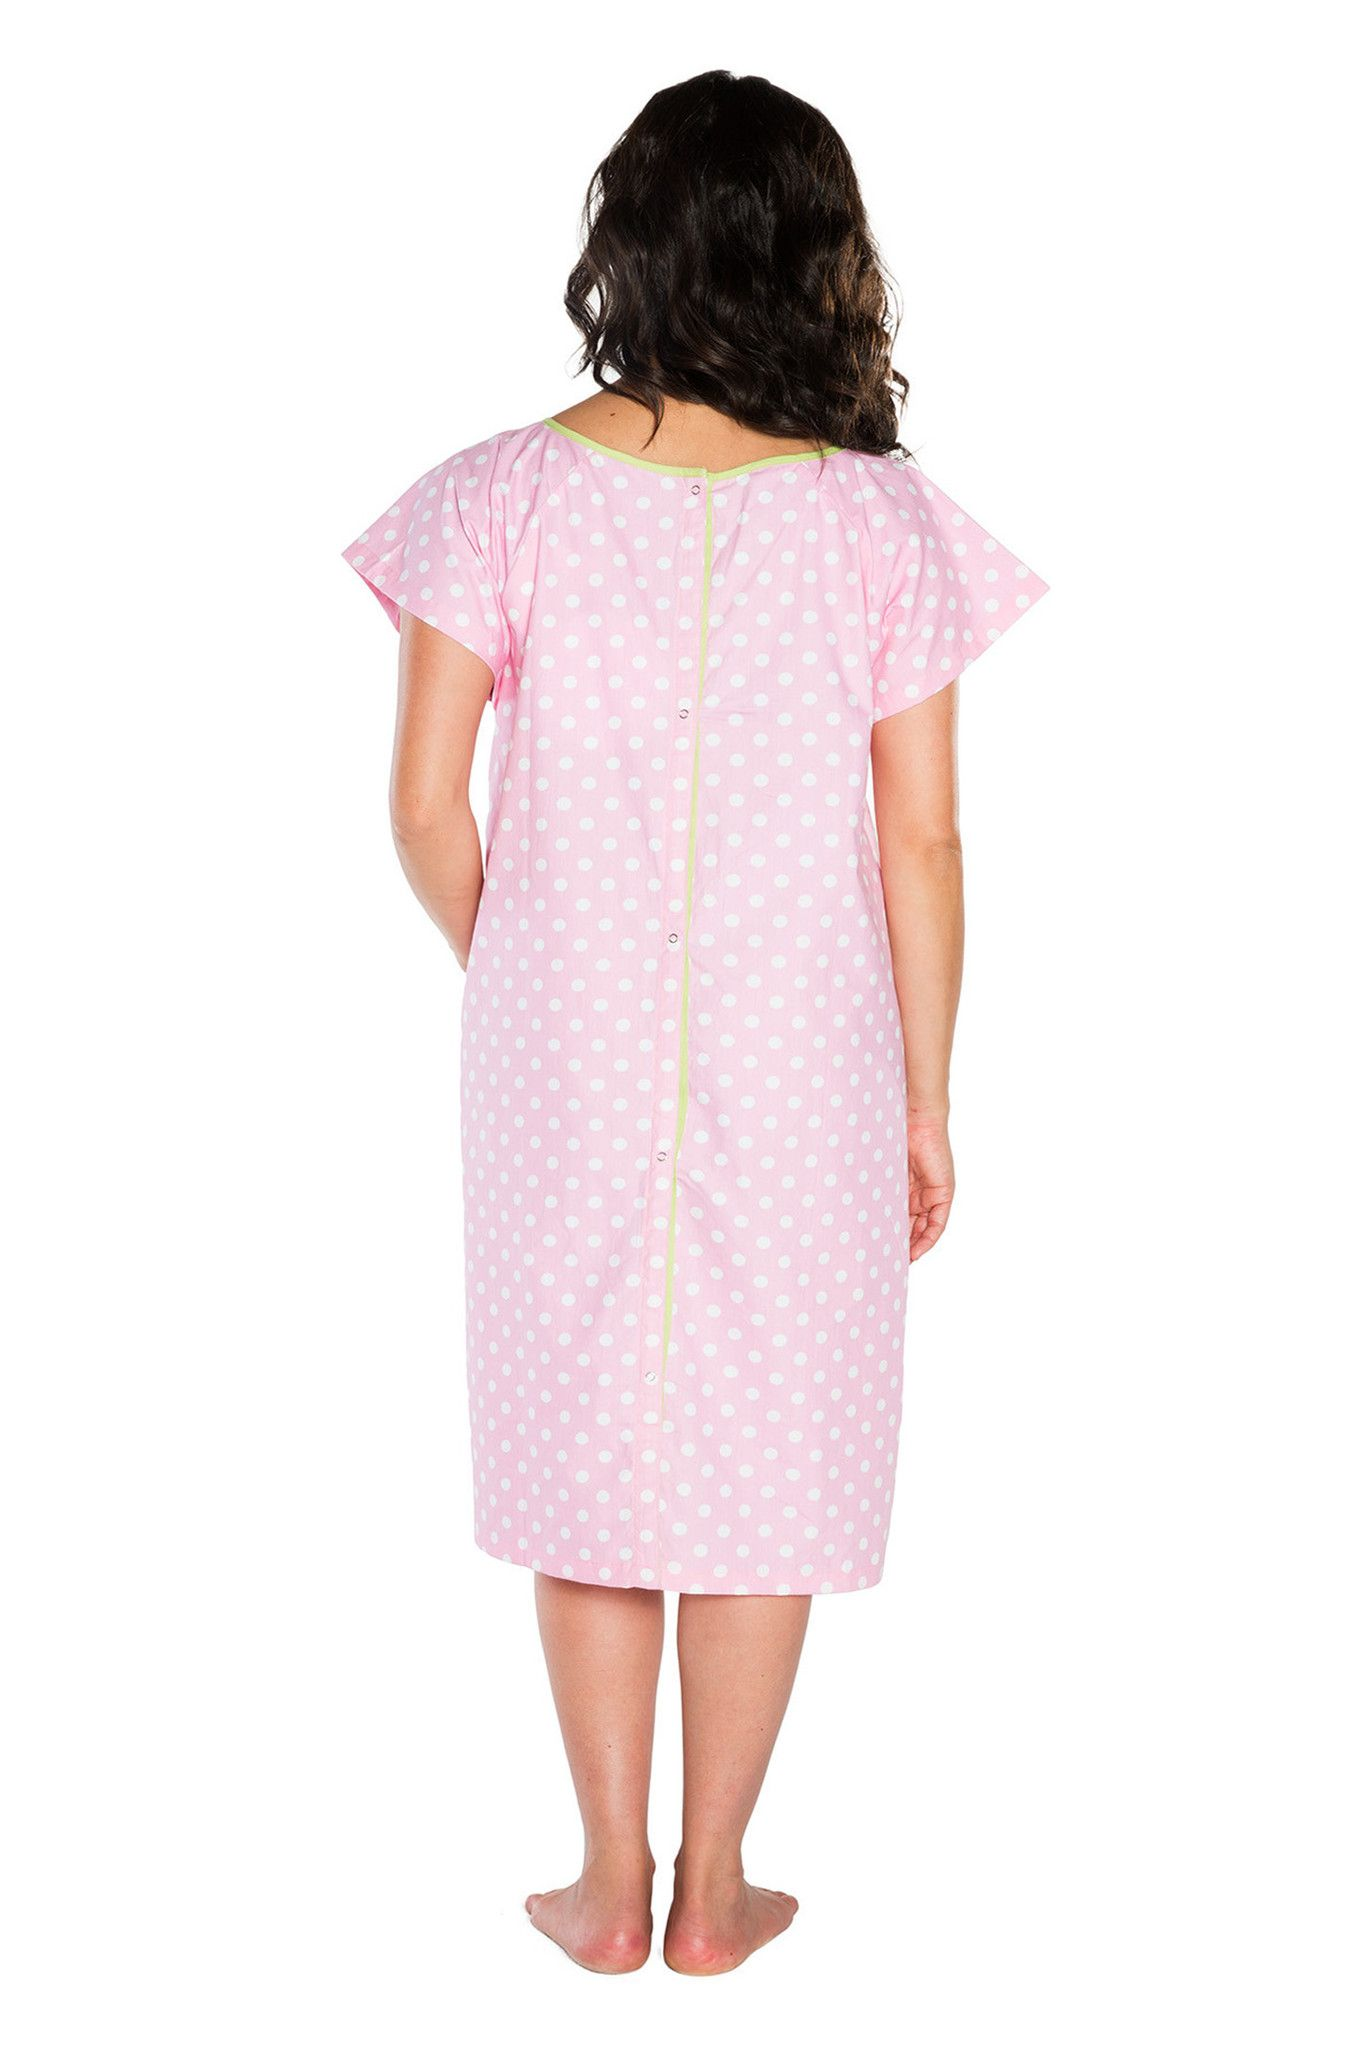 Molly Labor & Delivery Gown | Delivery gown, Maternity hospital ...